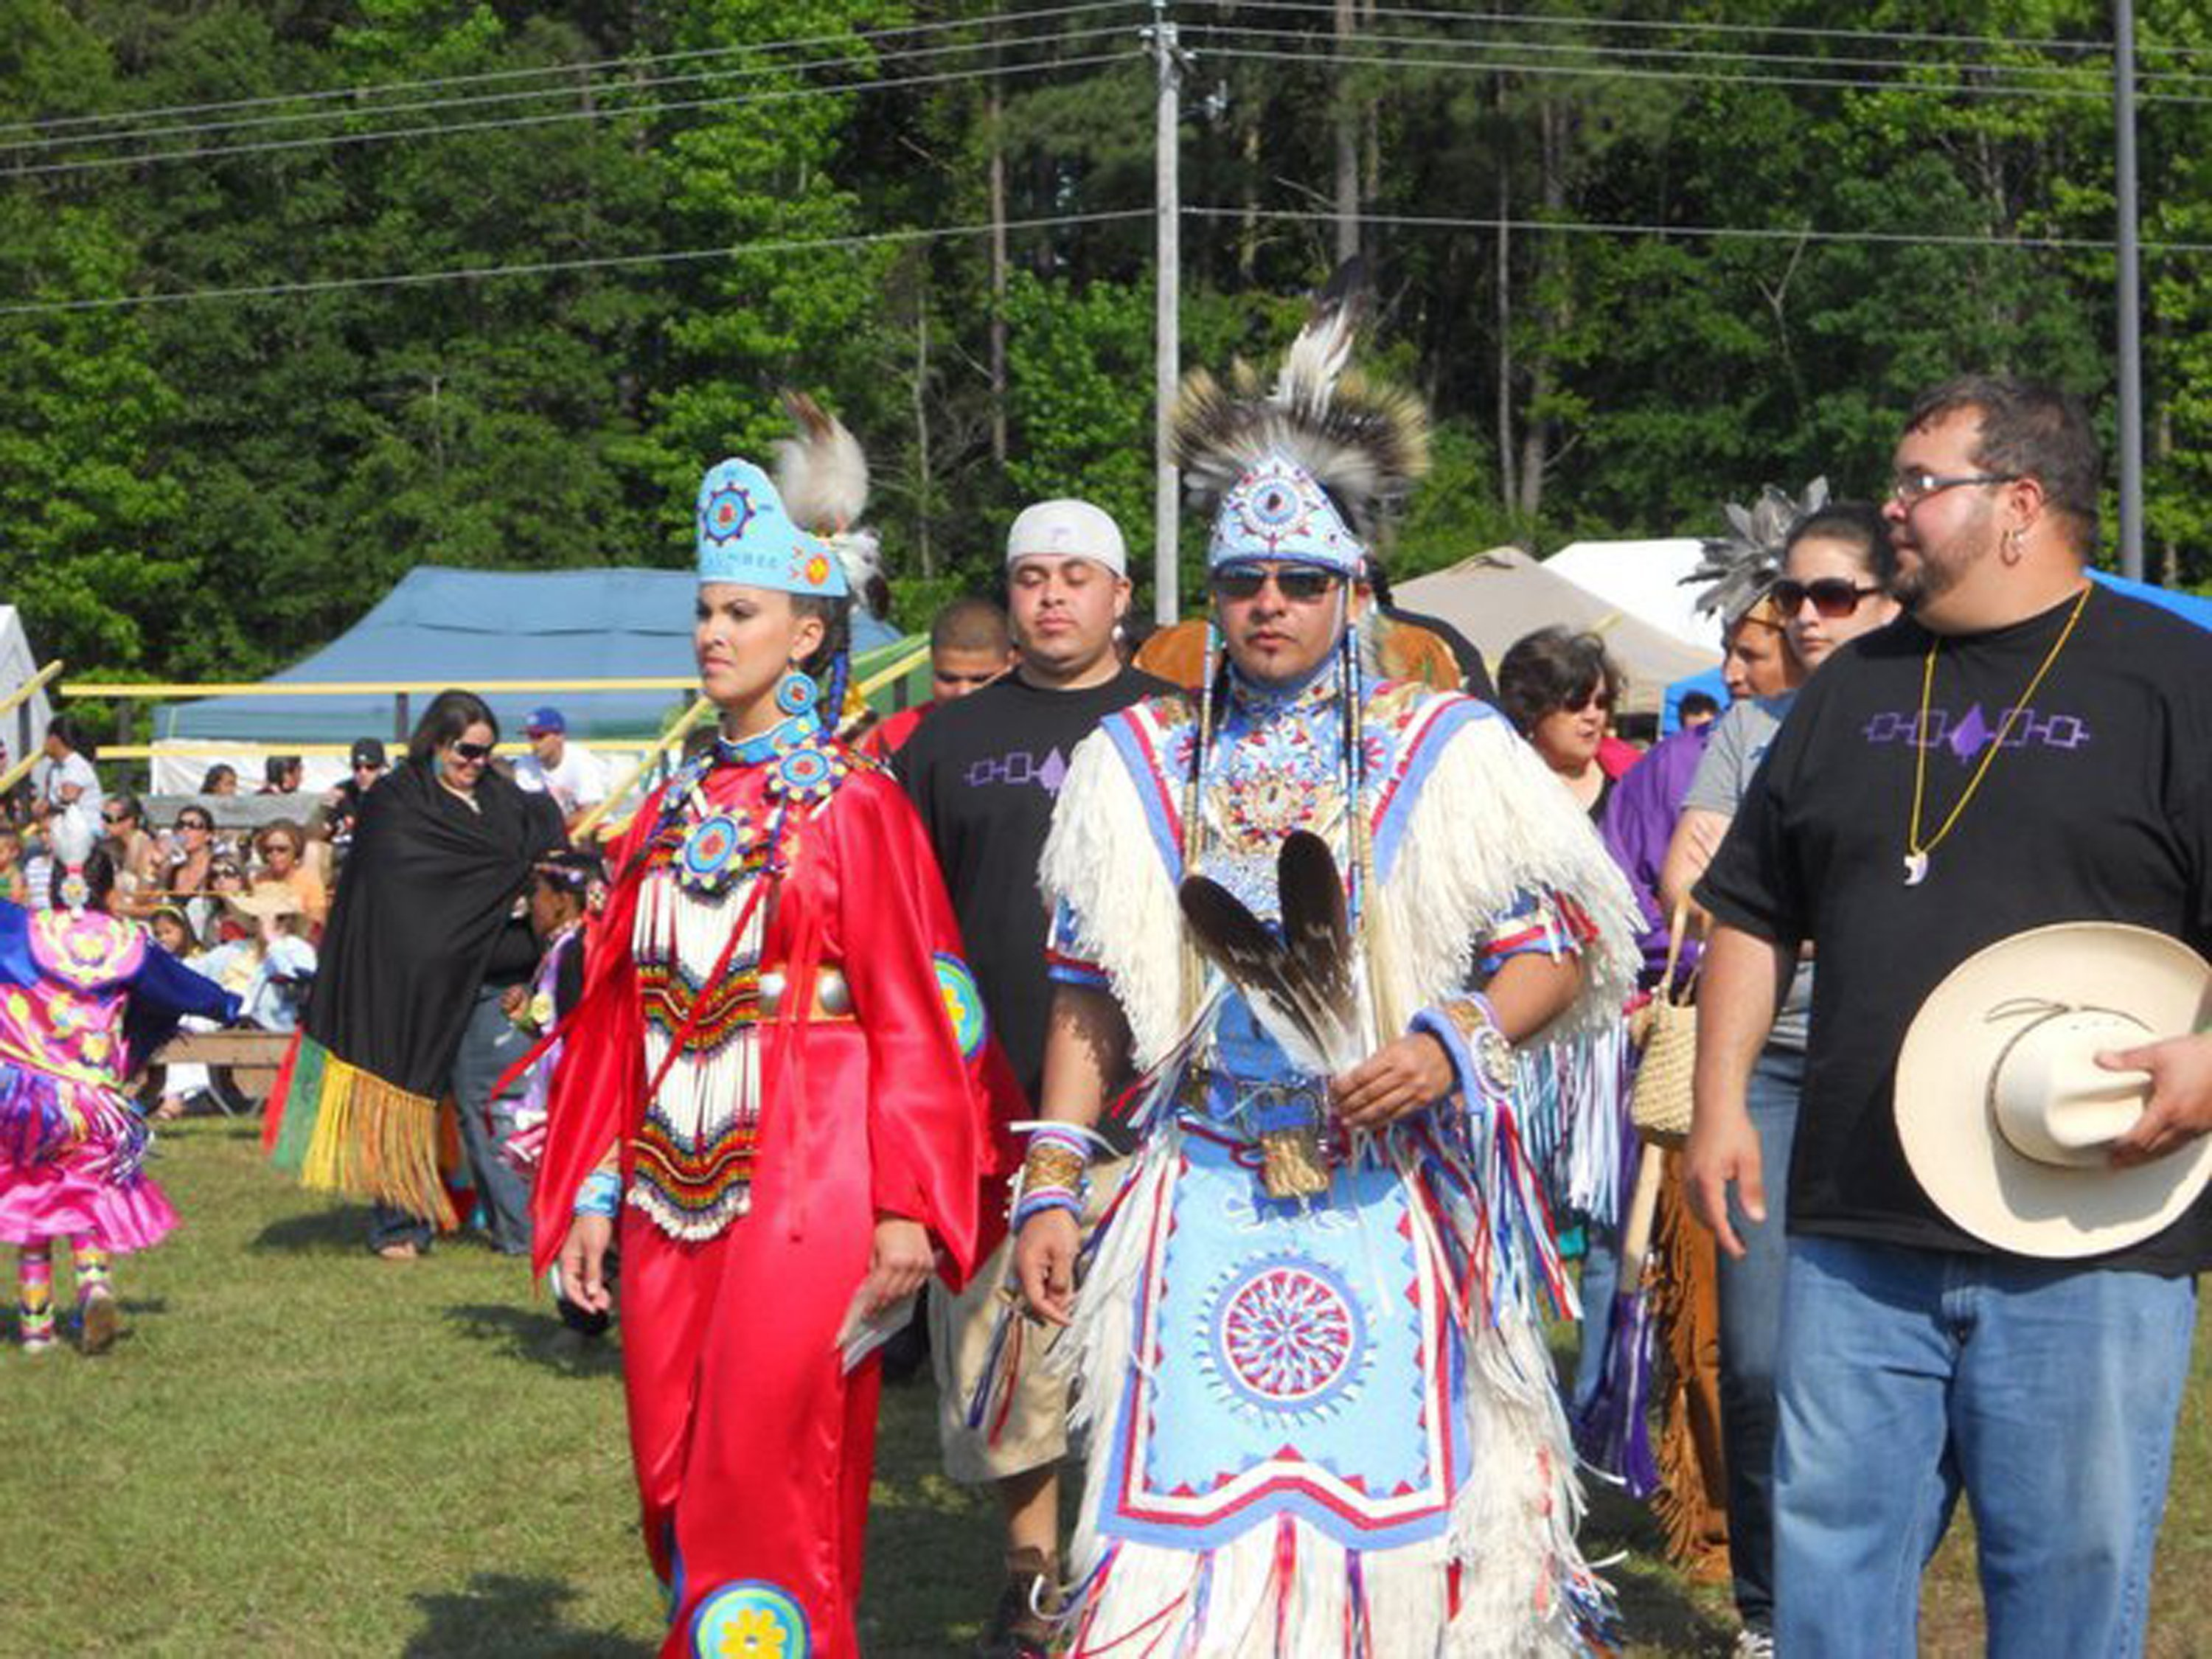 Rob Jacobs, center, a member of North Carolina's Lumbee Tribe, wore his eagle feathers at a Lumbee powwow. Since the tribe is not recognized by the federal government, Jacobs violates the Bald Eagle Protection Act whenever he wears his feathers. Only members of federally-recognized tribes are allowed to wear the feathers for religious or cultural purposes. (Photo courtesy of Rob Jacobs/MCT)